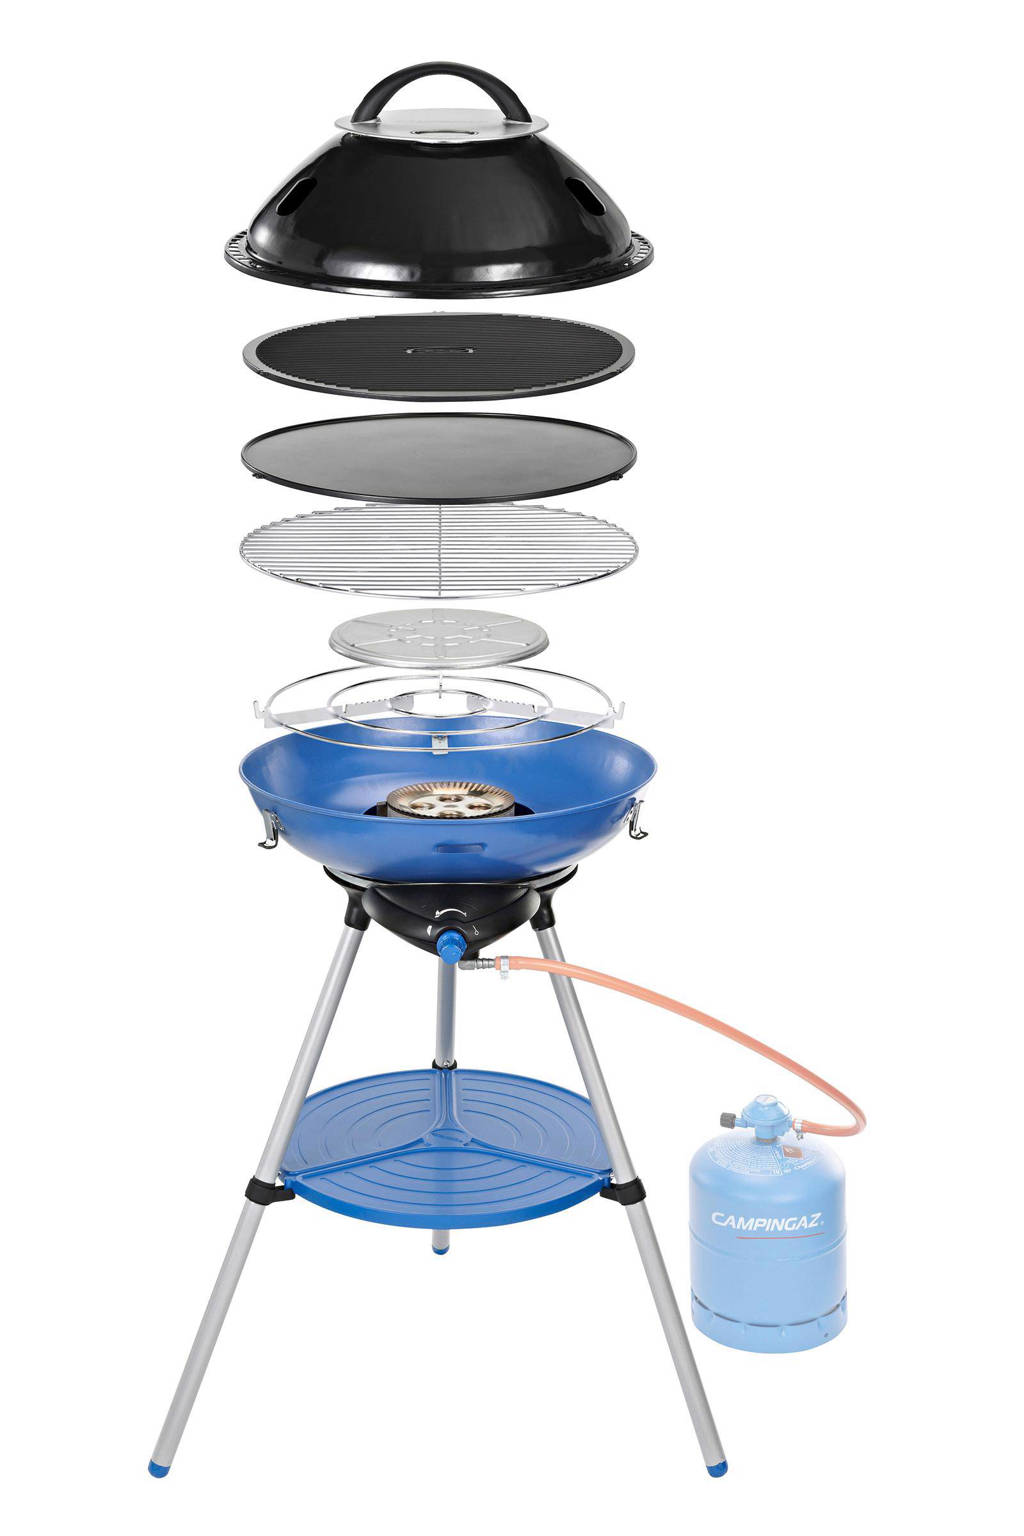 Campingaz Party Grill 600 Int gasbarbecue, Blauw